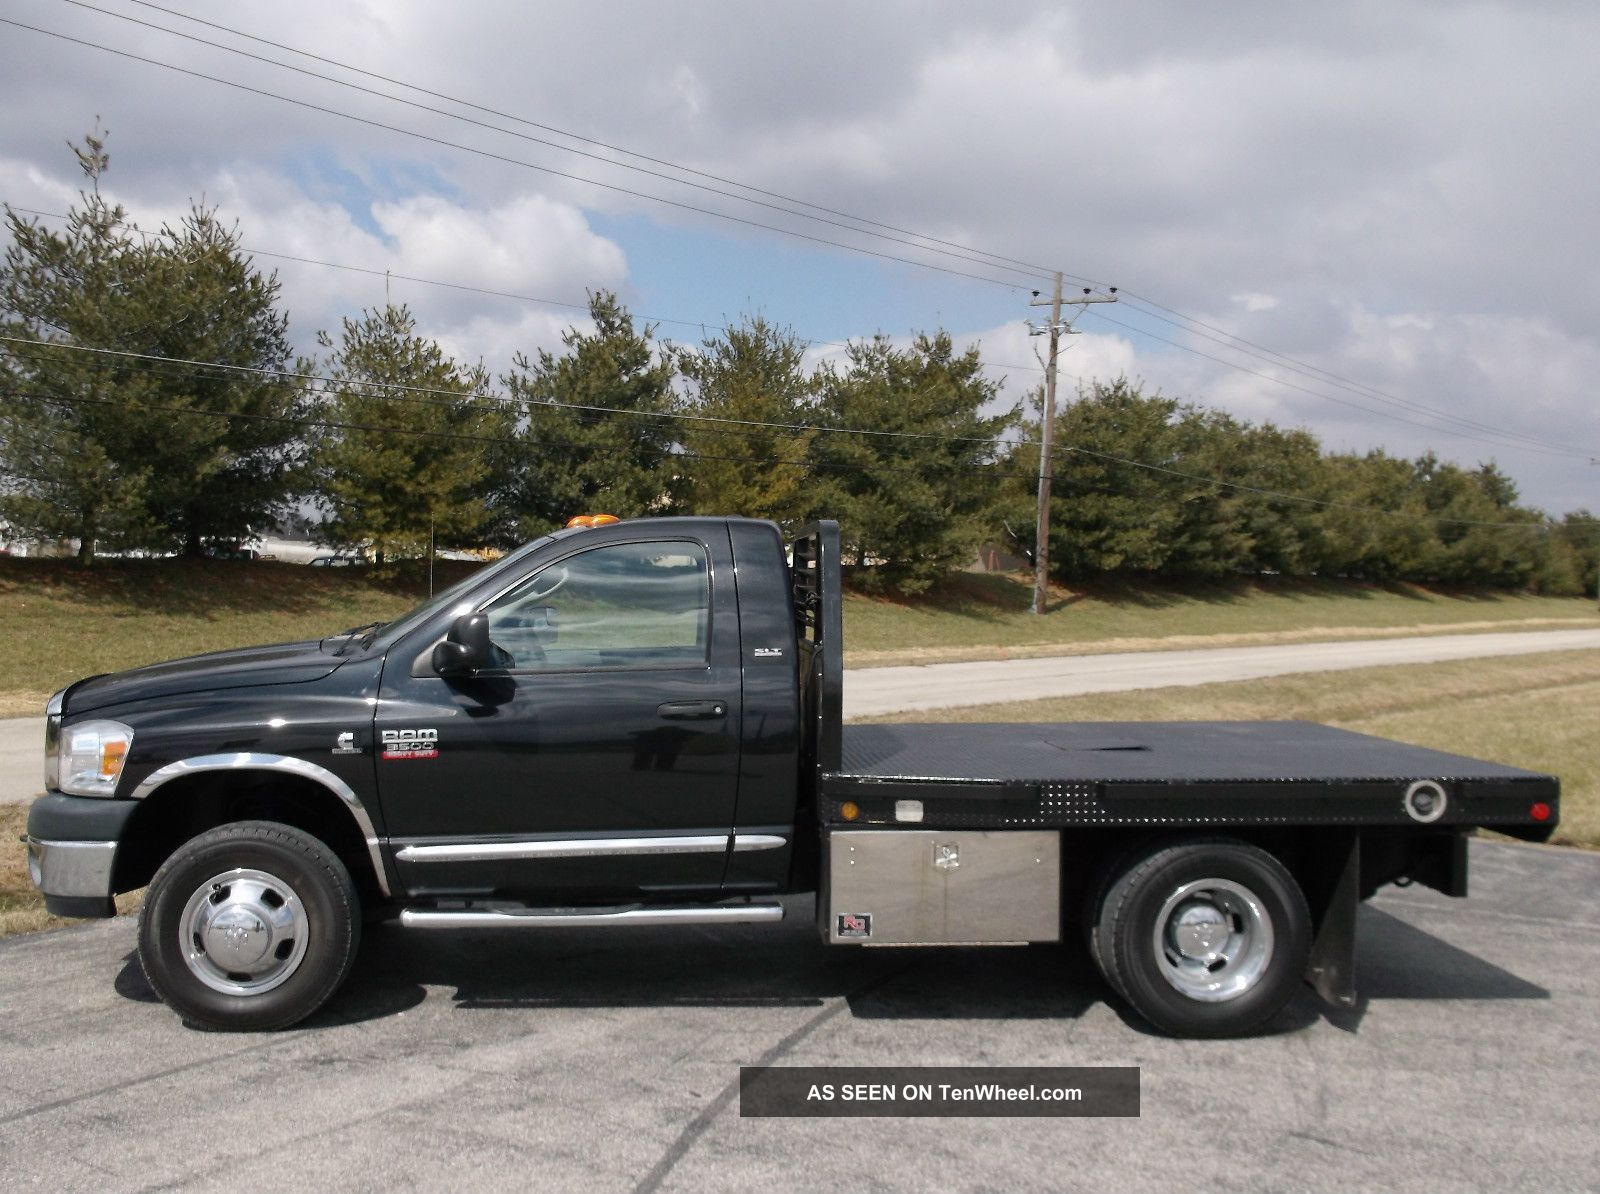 2007 dodge ram 3500 slt reg cab chassis 4x4 flat bed cummins tubo diesel 4x4. Black Bedroom Furniture Sets. Home Design Ideas